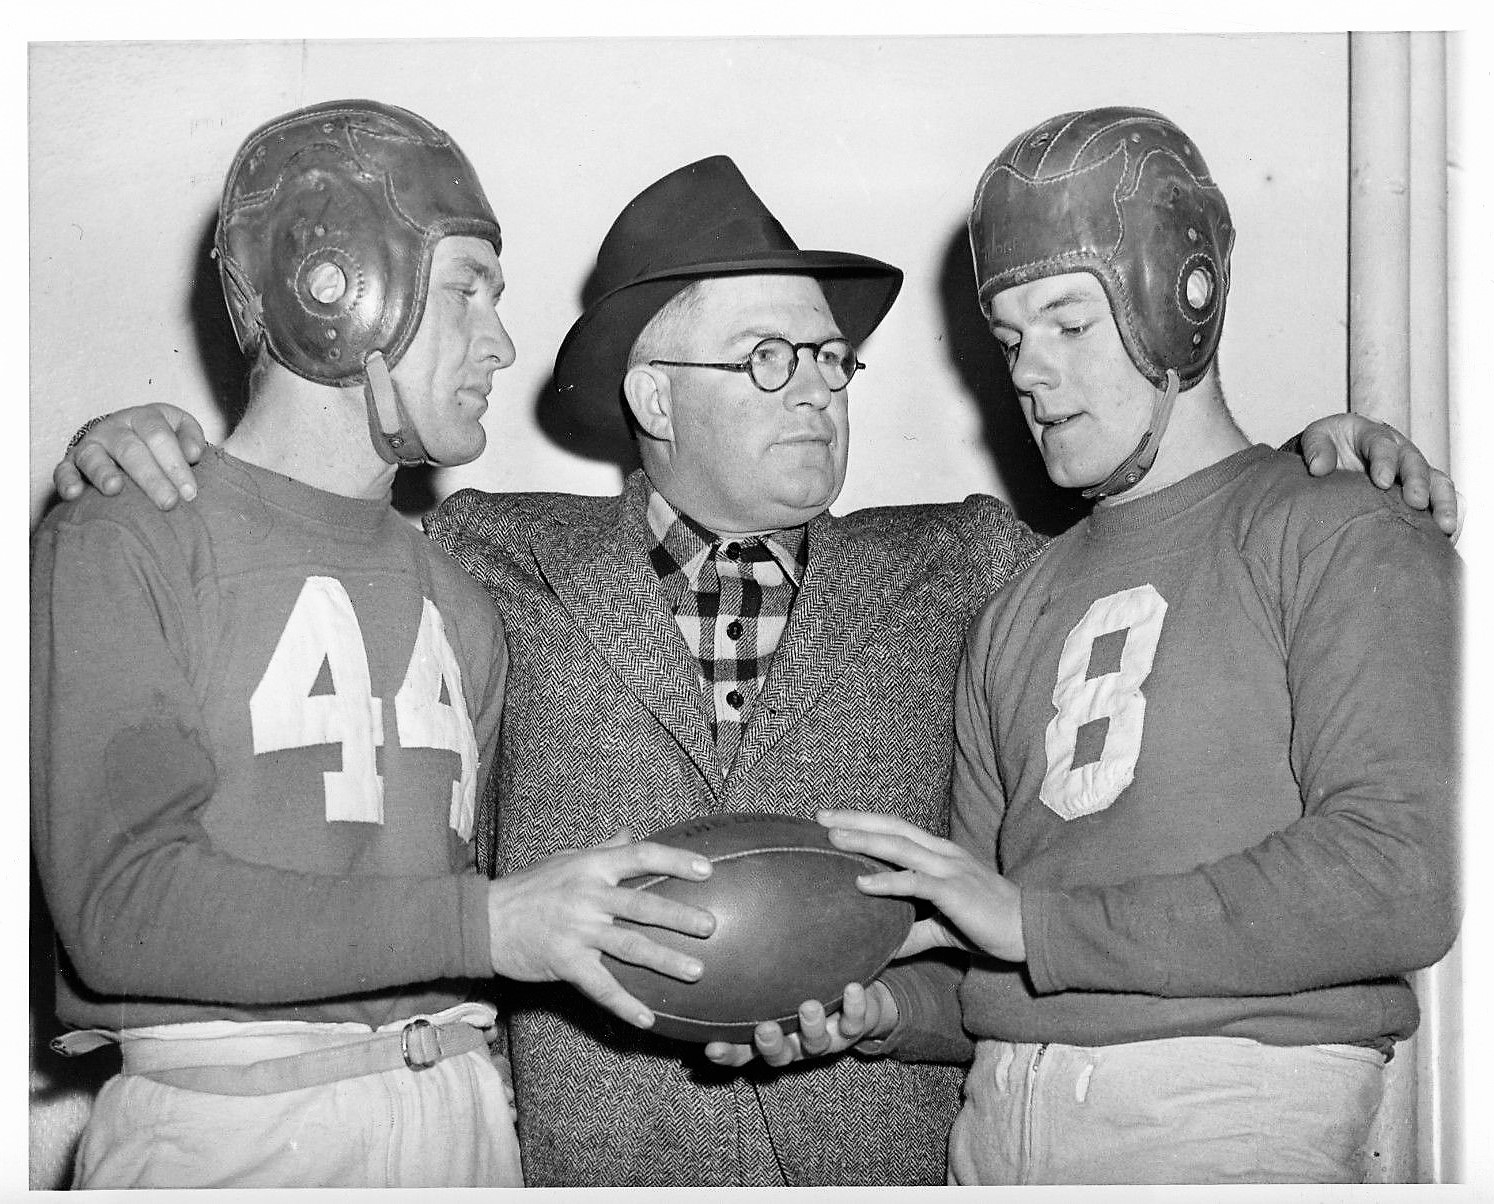 Emery Nix, Steve Owen, Bill Paschal; New York Giants (1943)